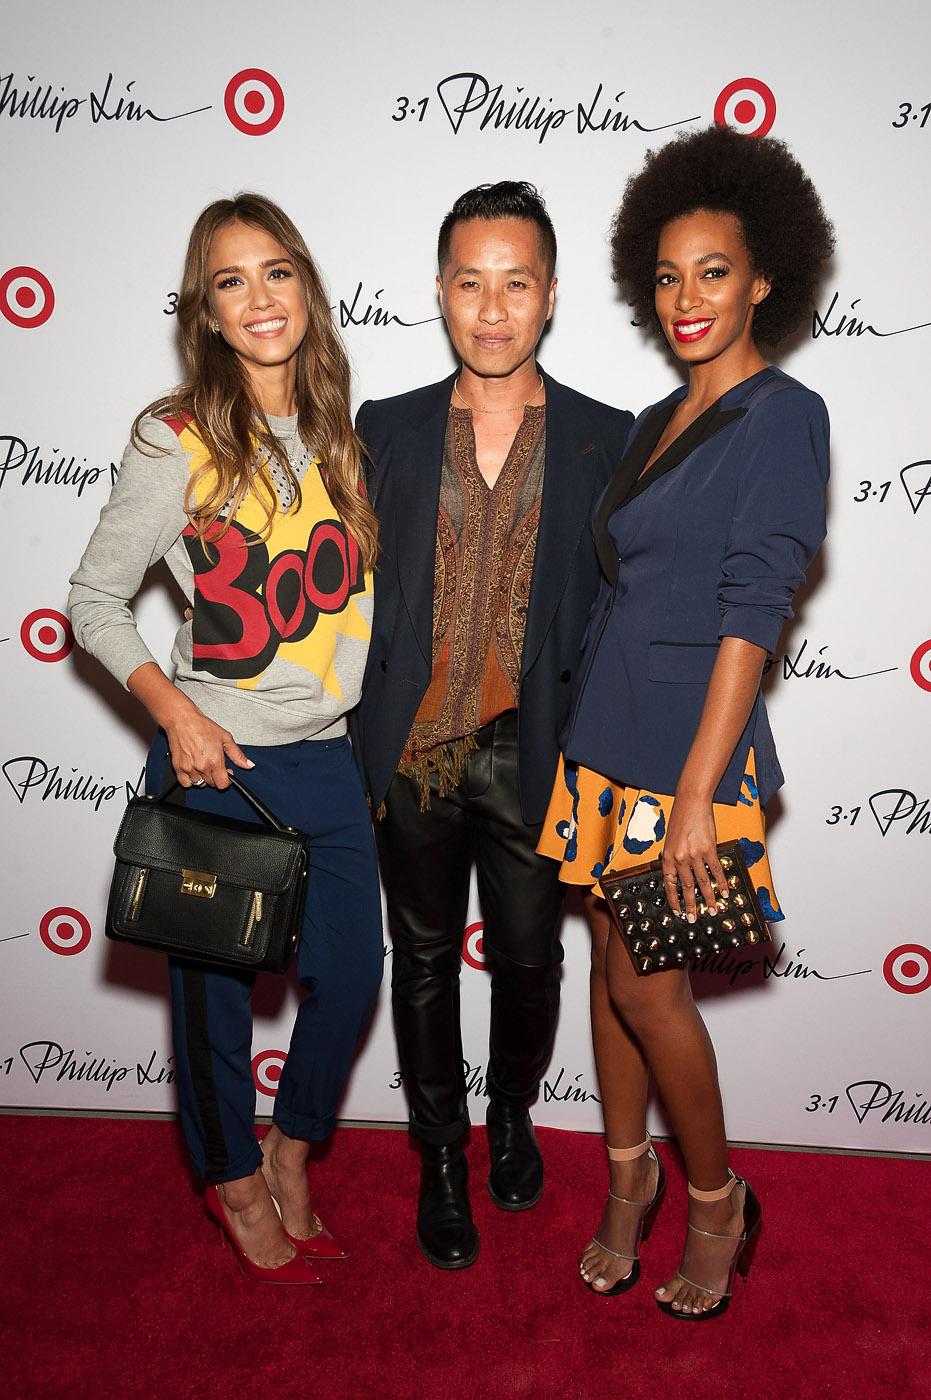 Jessica Alba and Solange Knowles celebrate 3.1 Phillip Lim for Target launch